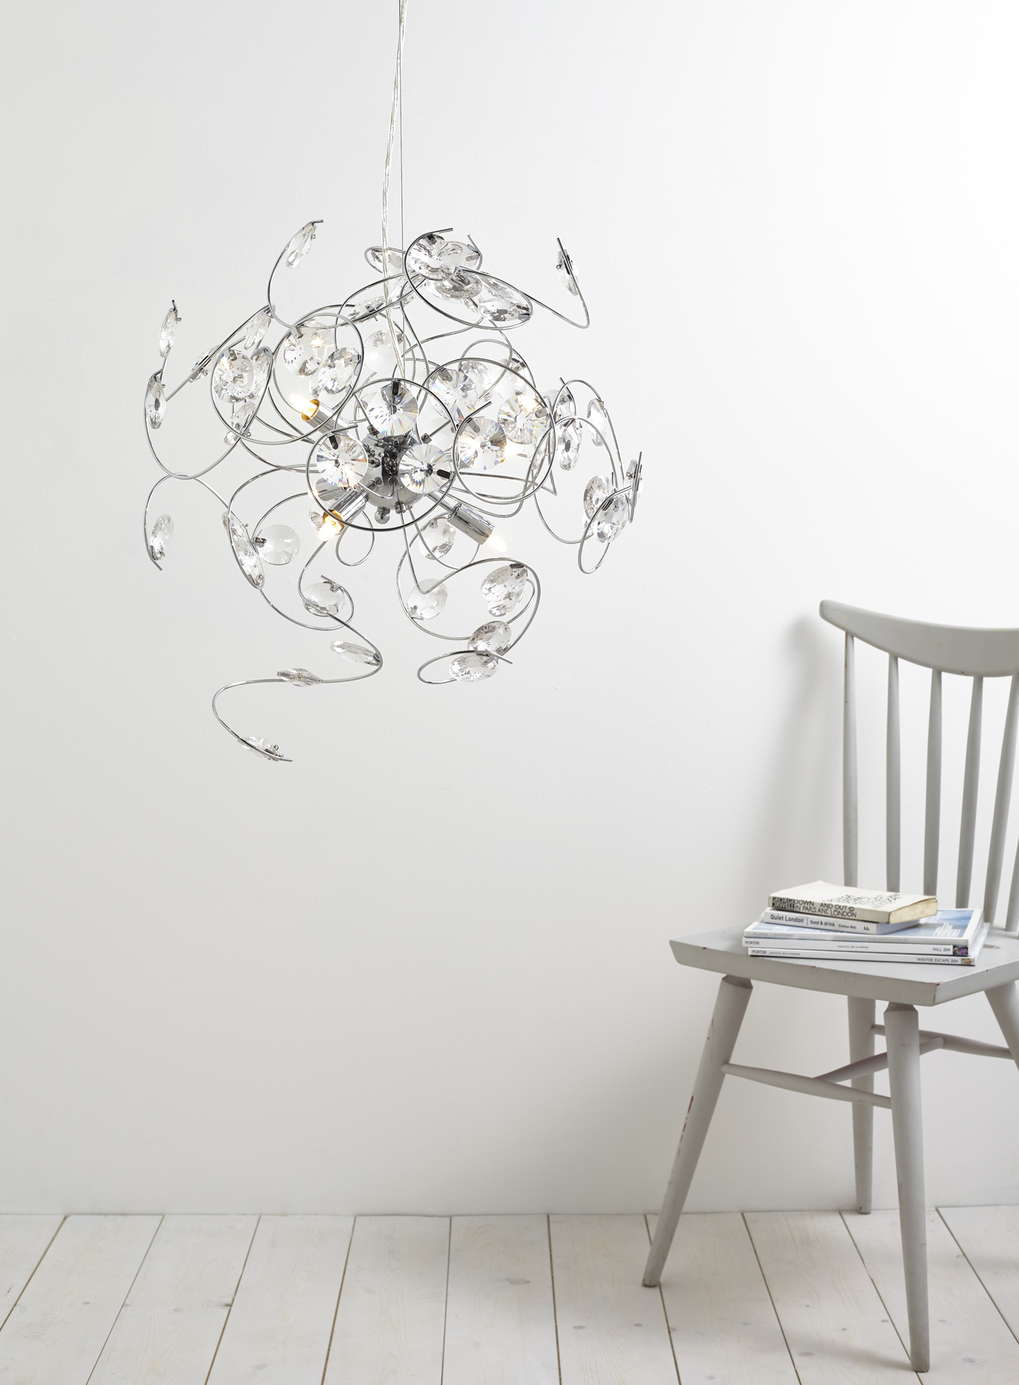 Bhs Lila Wall Lights : Bhs ceiling light - quench your thirst for beauty and aesthetic genius all in one go Warisan ...